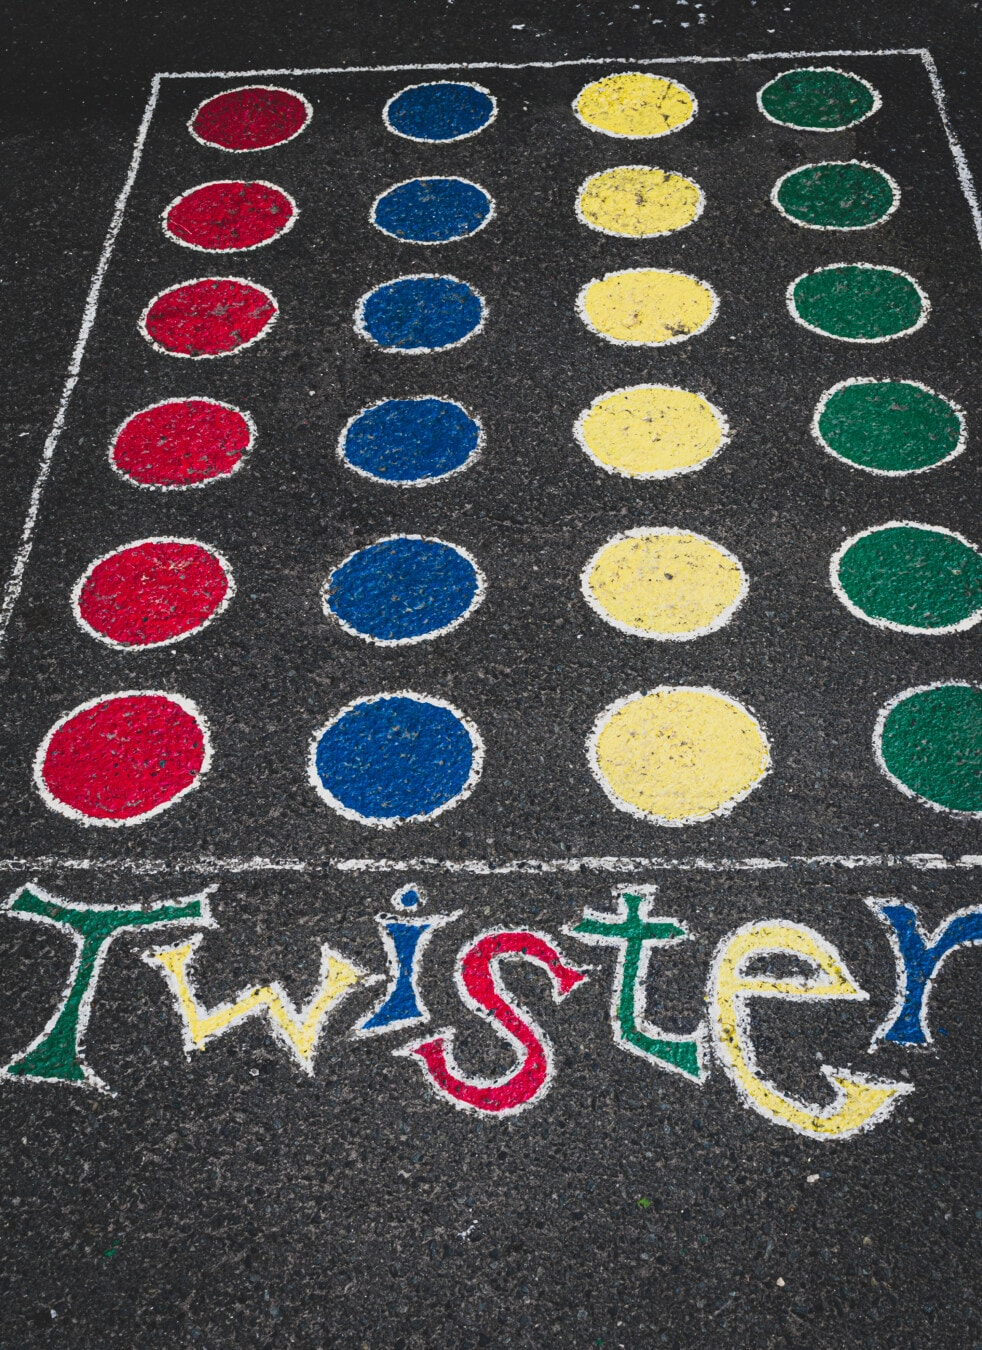 Twister game, texture, pattern, abstract, design, color, symbol, sign, art, street, road